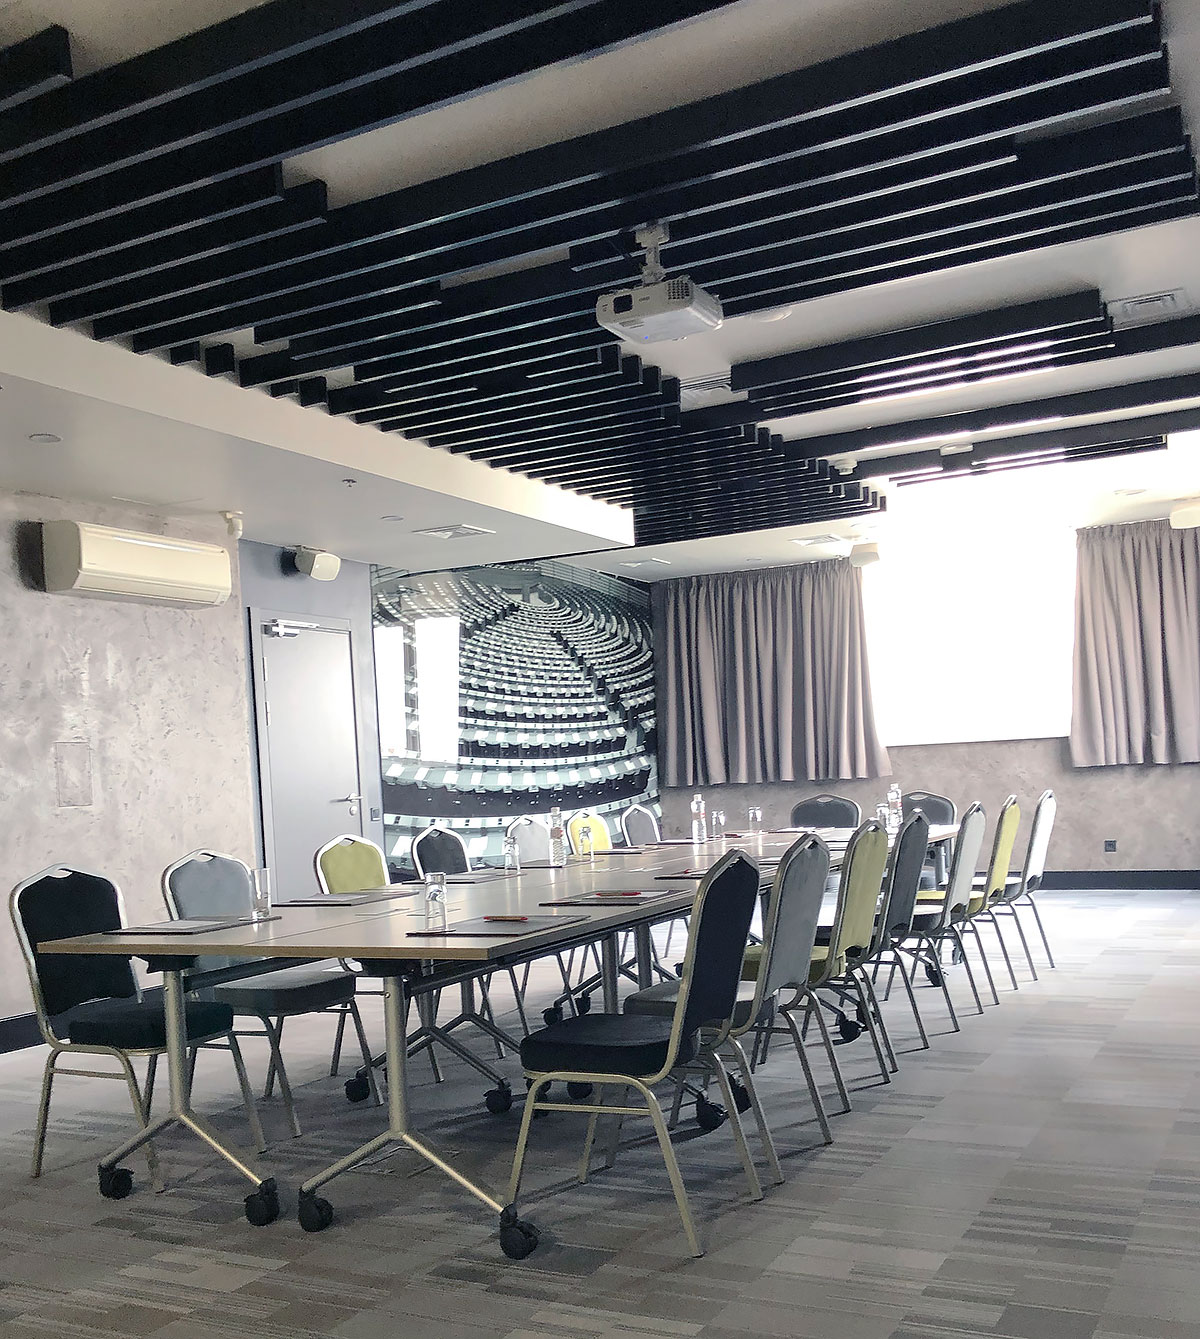 KRAFT Designer Rack False Ceiling, T-Profile Ceiling with KRAFT T-Led Lights at the Hotel